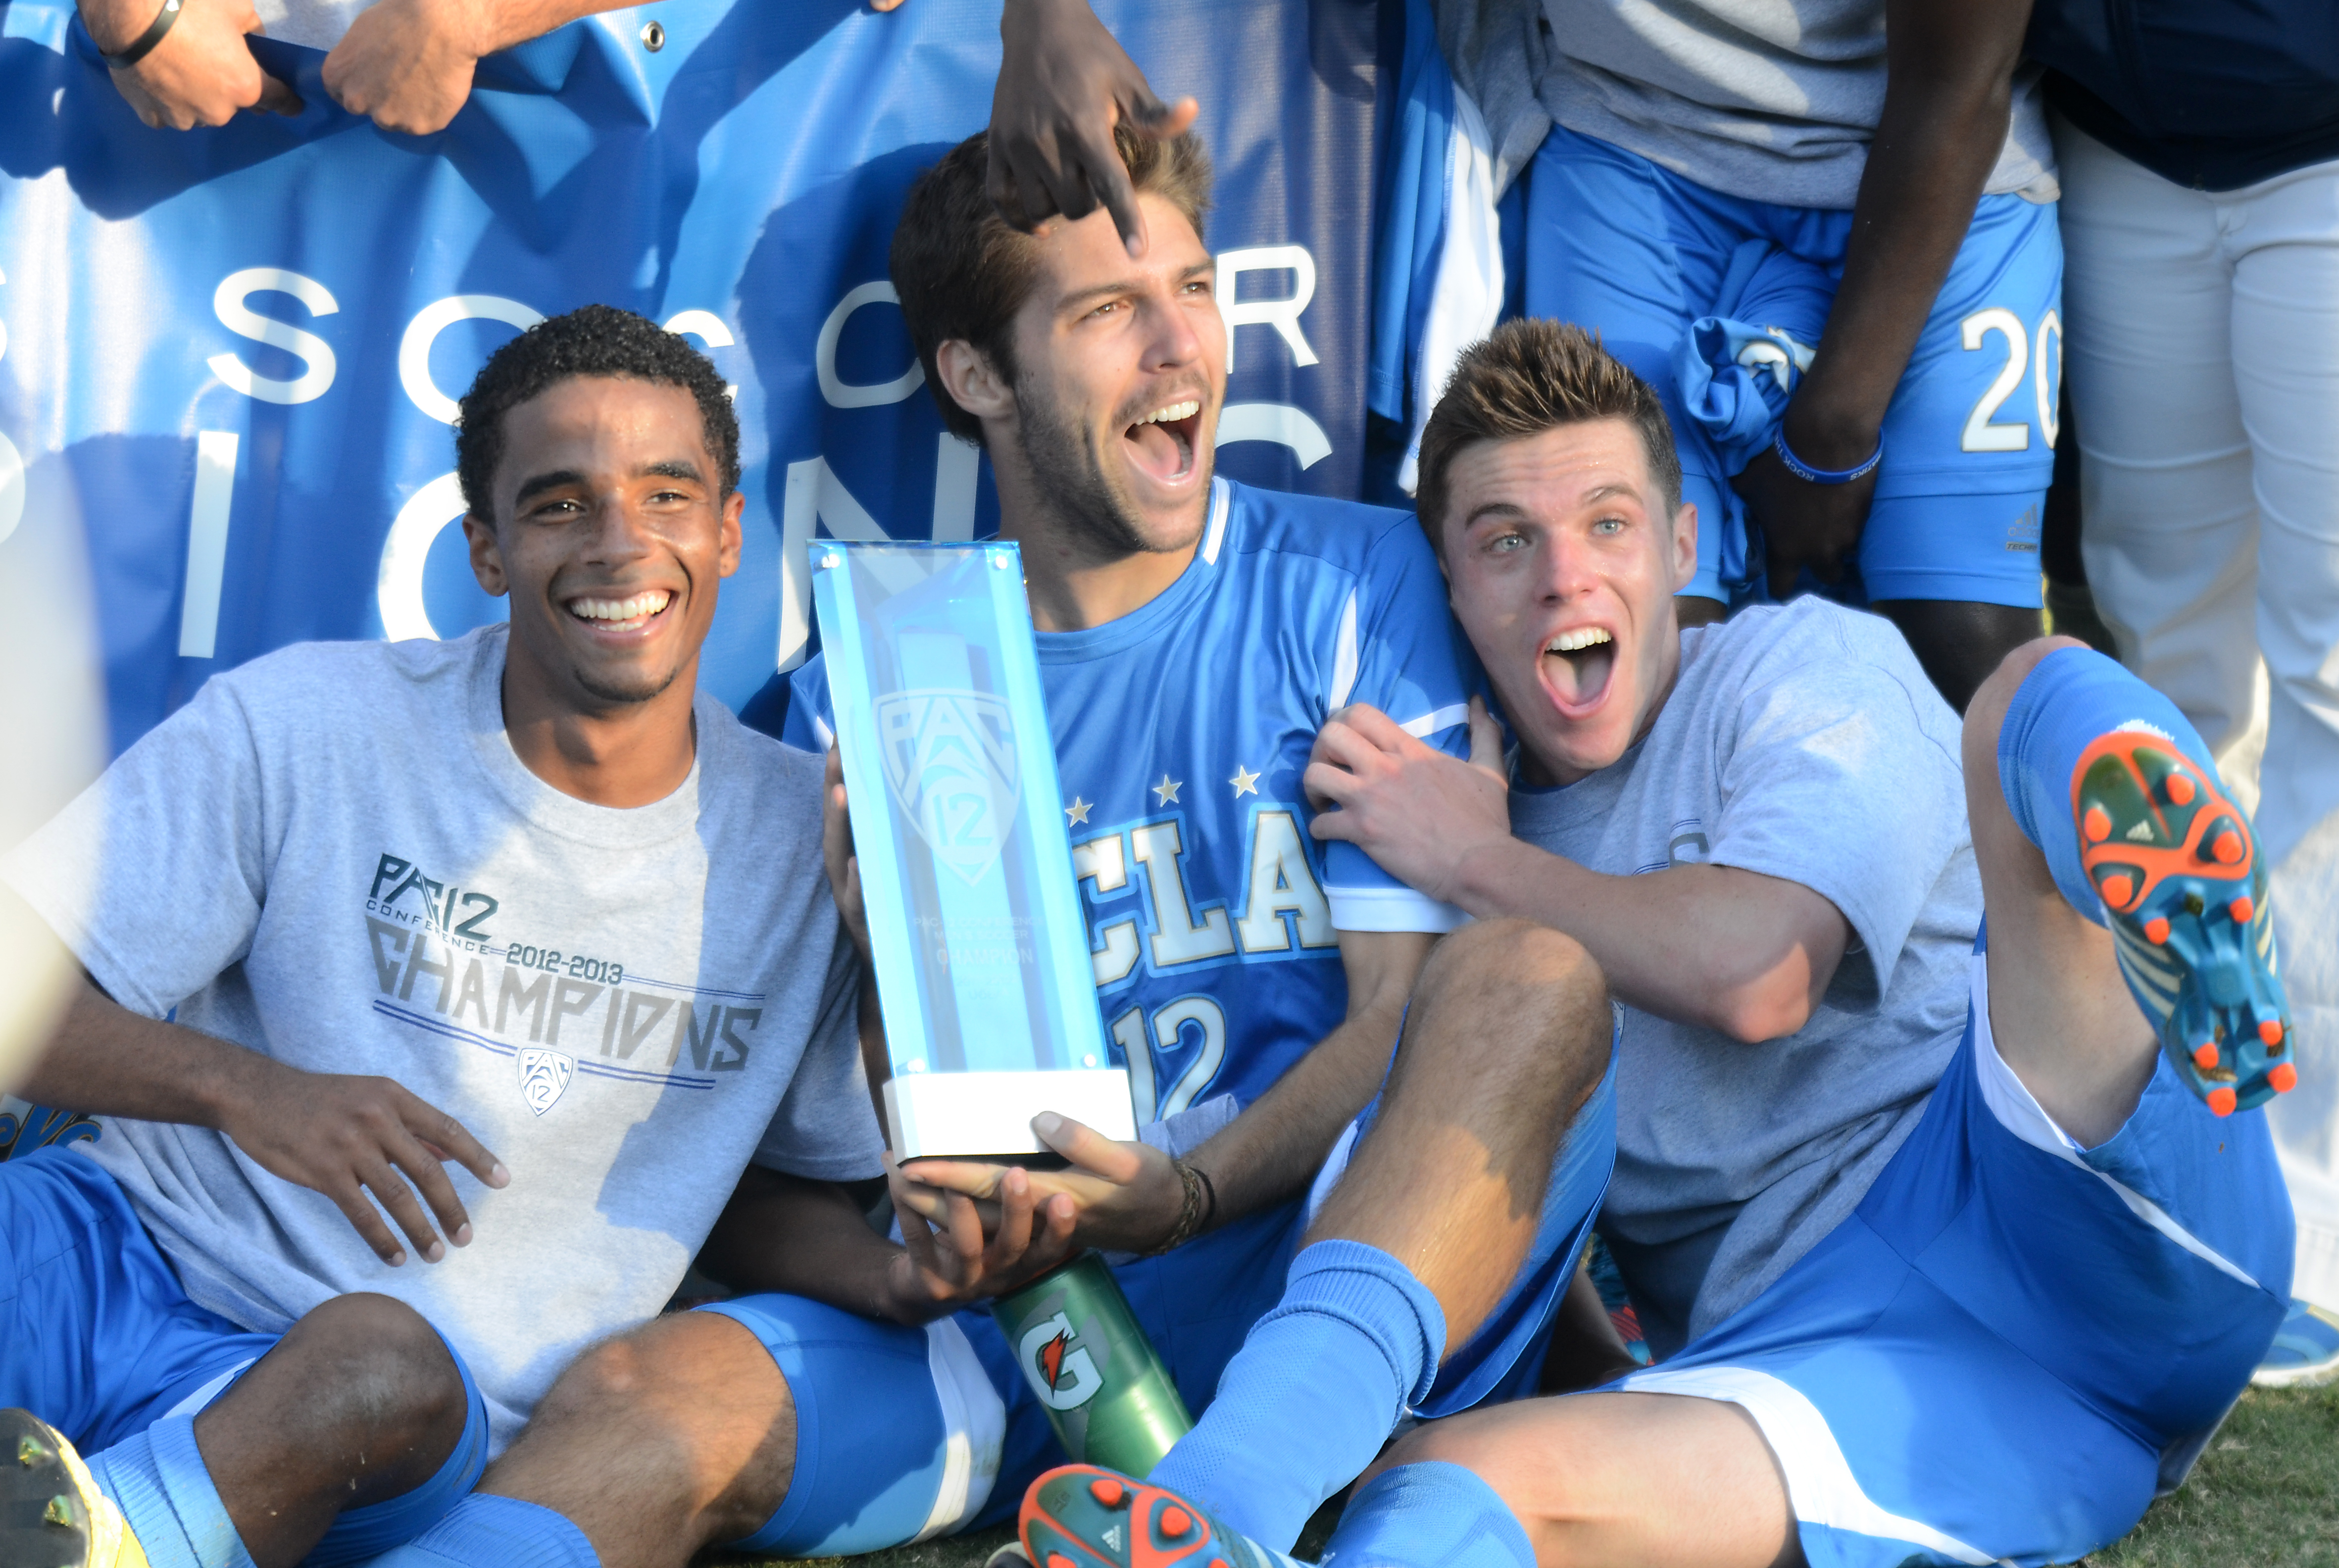 UCLA men's soccer beat San Diego State on Friday, a win they needed in order to snag the Pac-12 conference title.